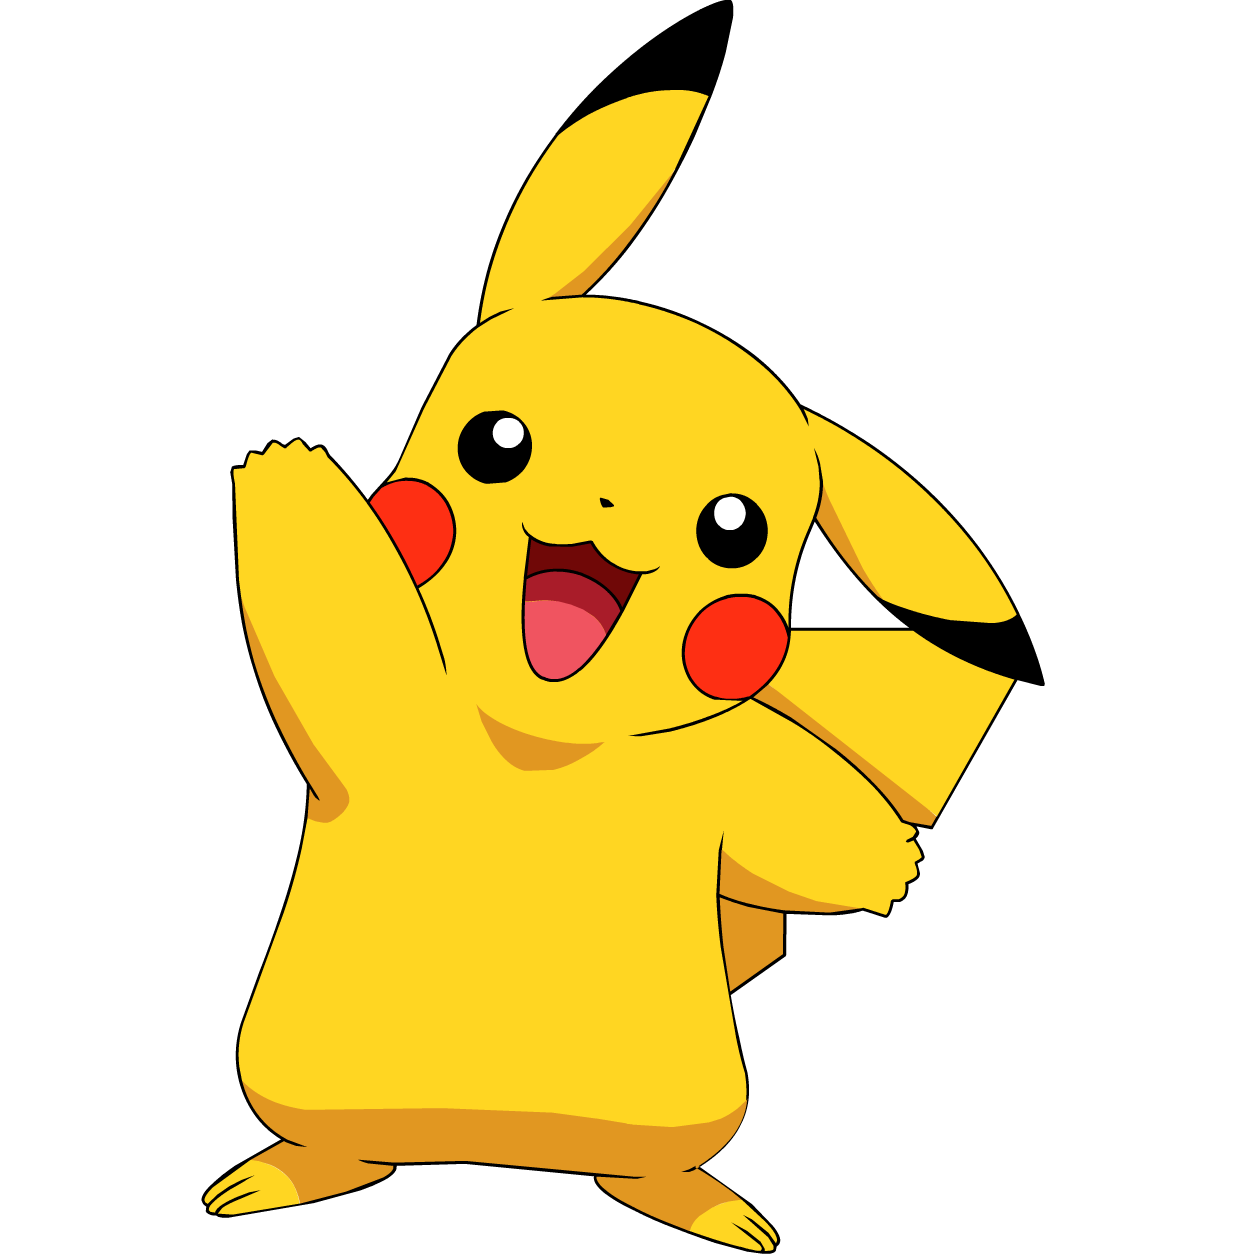 Image Result For Pokemon Anime Original Series Pikachu